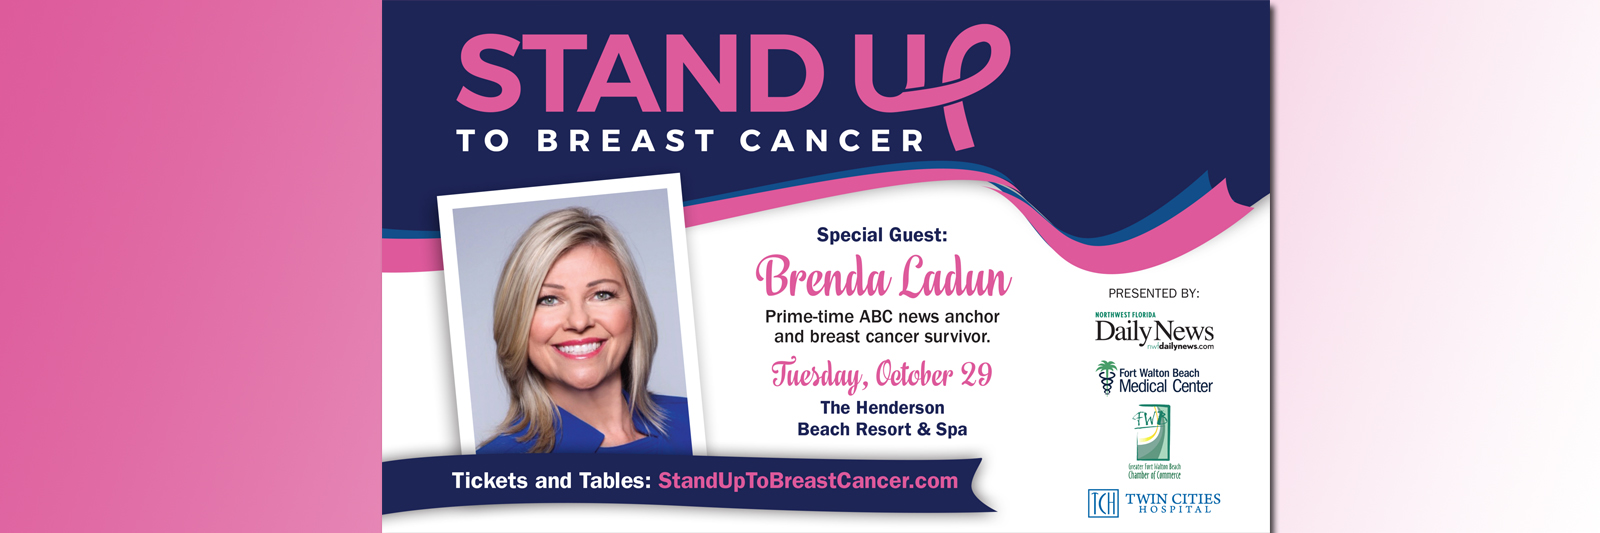 Stand-Up-to-Breast-Cancer.jpg